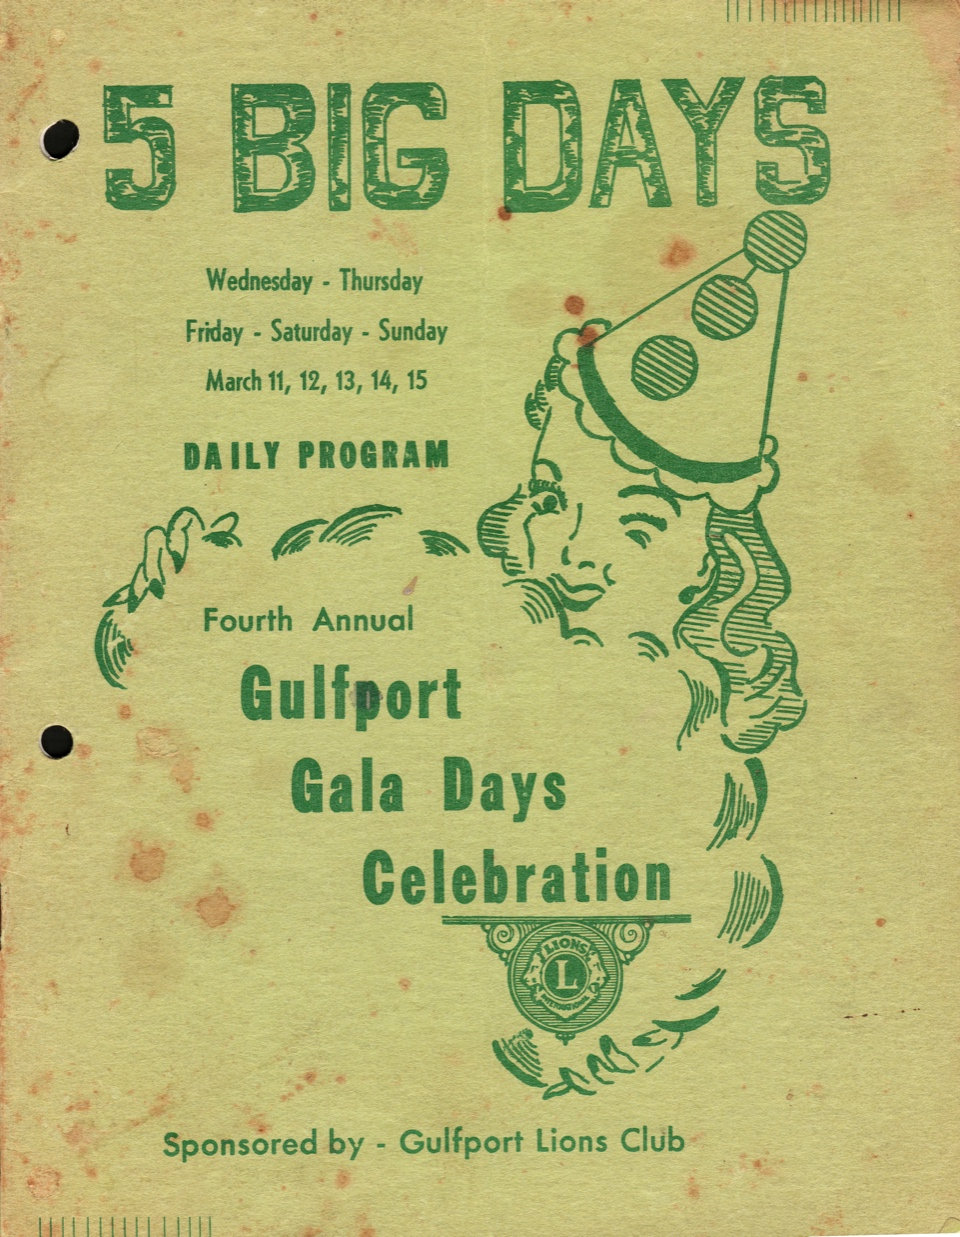 "Photo of a 1959 GP Gala Days Celebration Pamphlet that reads ""5 Big Days, Wednesday - Thursday, Friday - Saturday - Sunday, March 11, 12, 14, 15, Daily Program, Fourth Annual Gulfport Gala Days Celebration, Sponsored by - Gulfport Lions Club"" with a drawing of a lady in a clown hat."